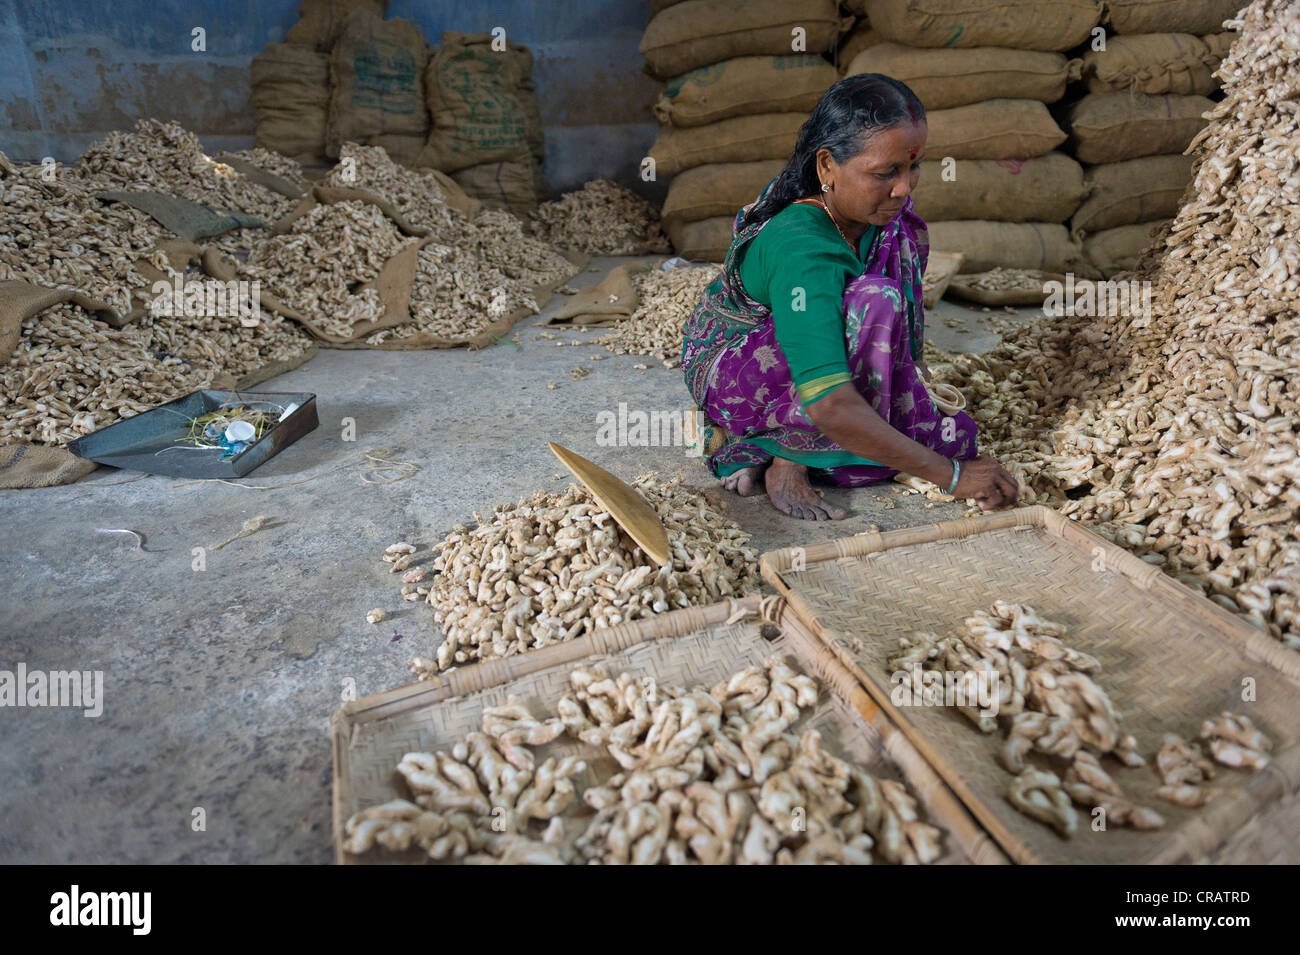 Women working in a spice storehouse, ginger and bags of ginger, Jew Town, Kochi, Kerala, southern India, India, - Stock Image